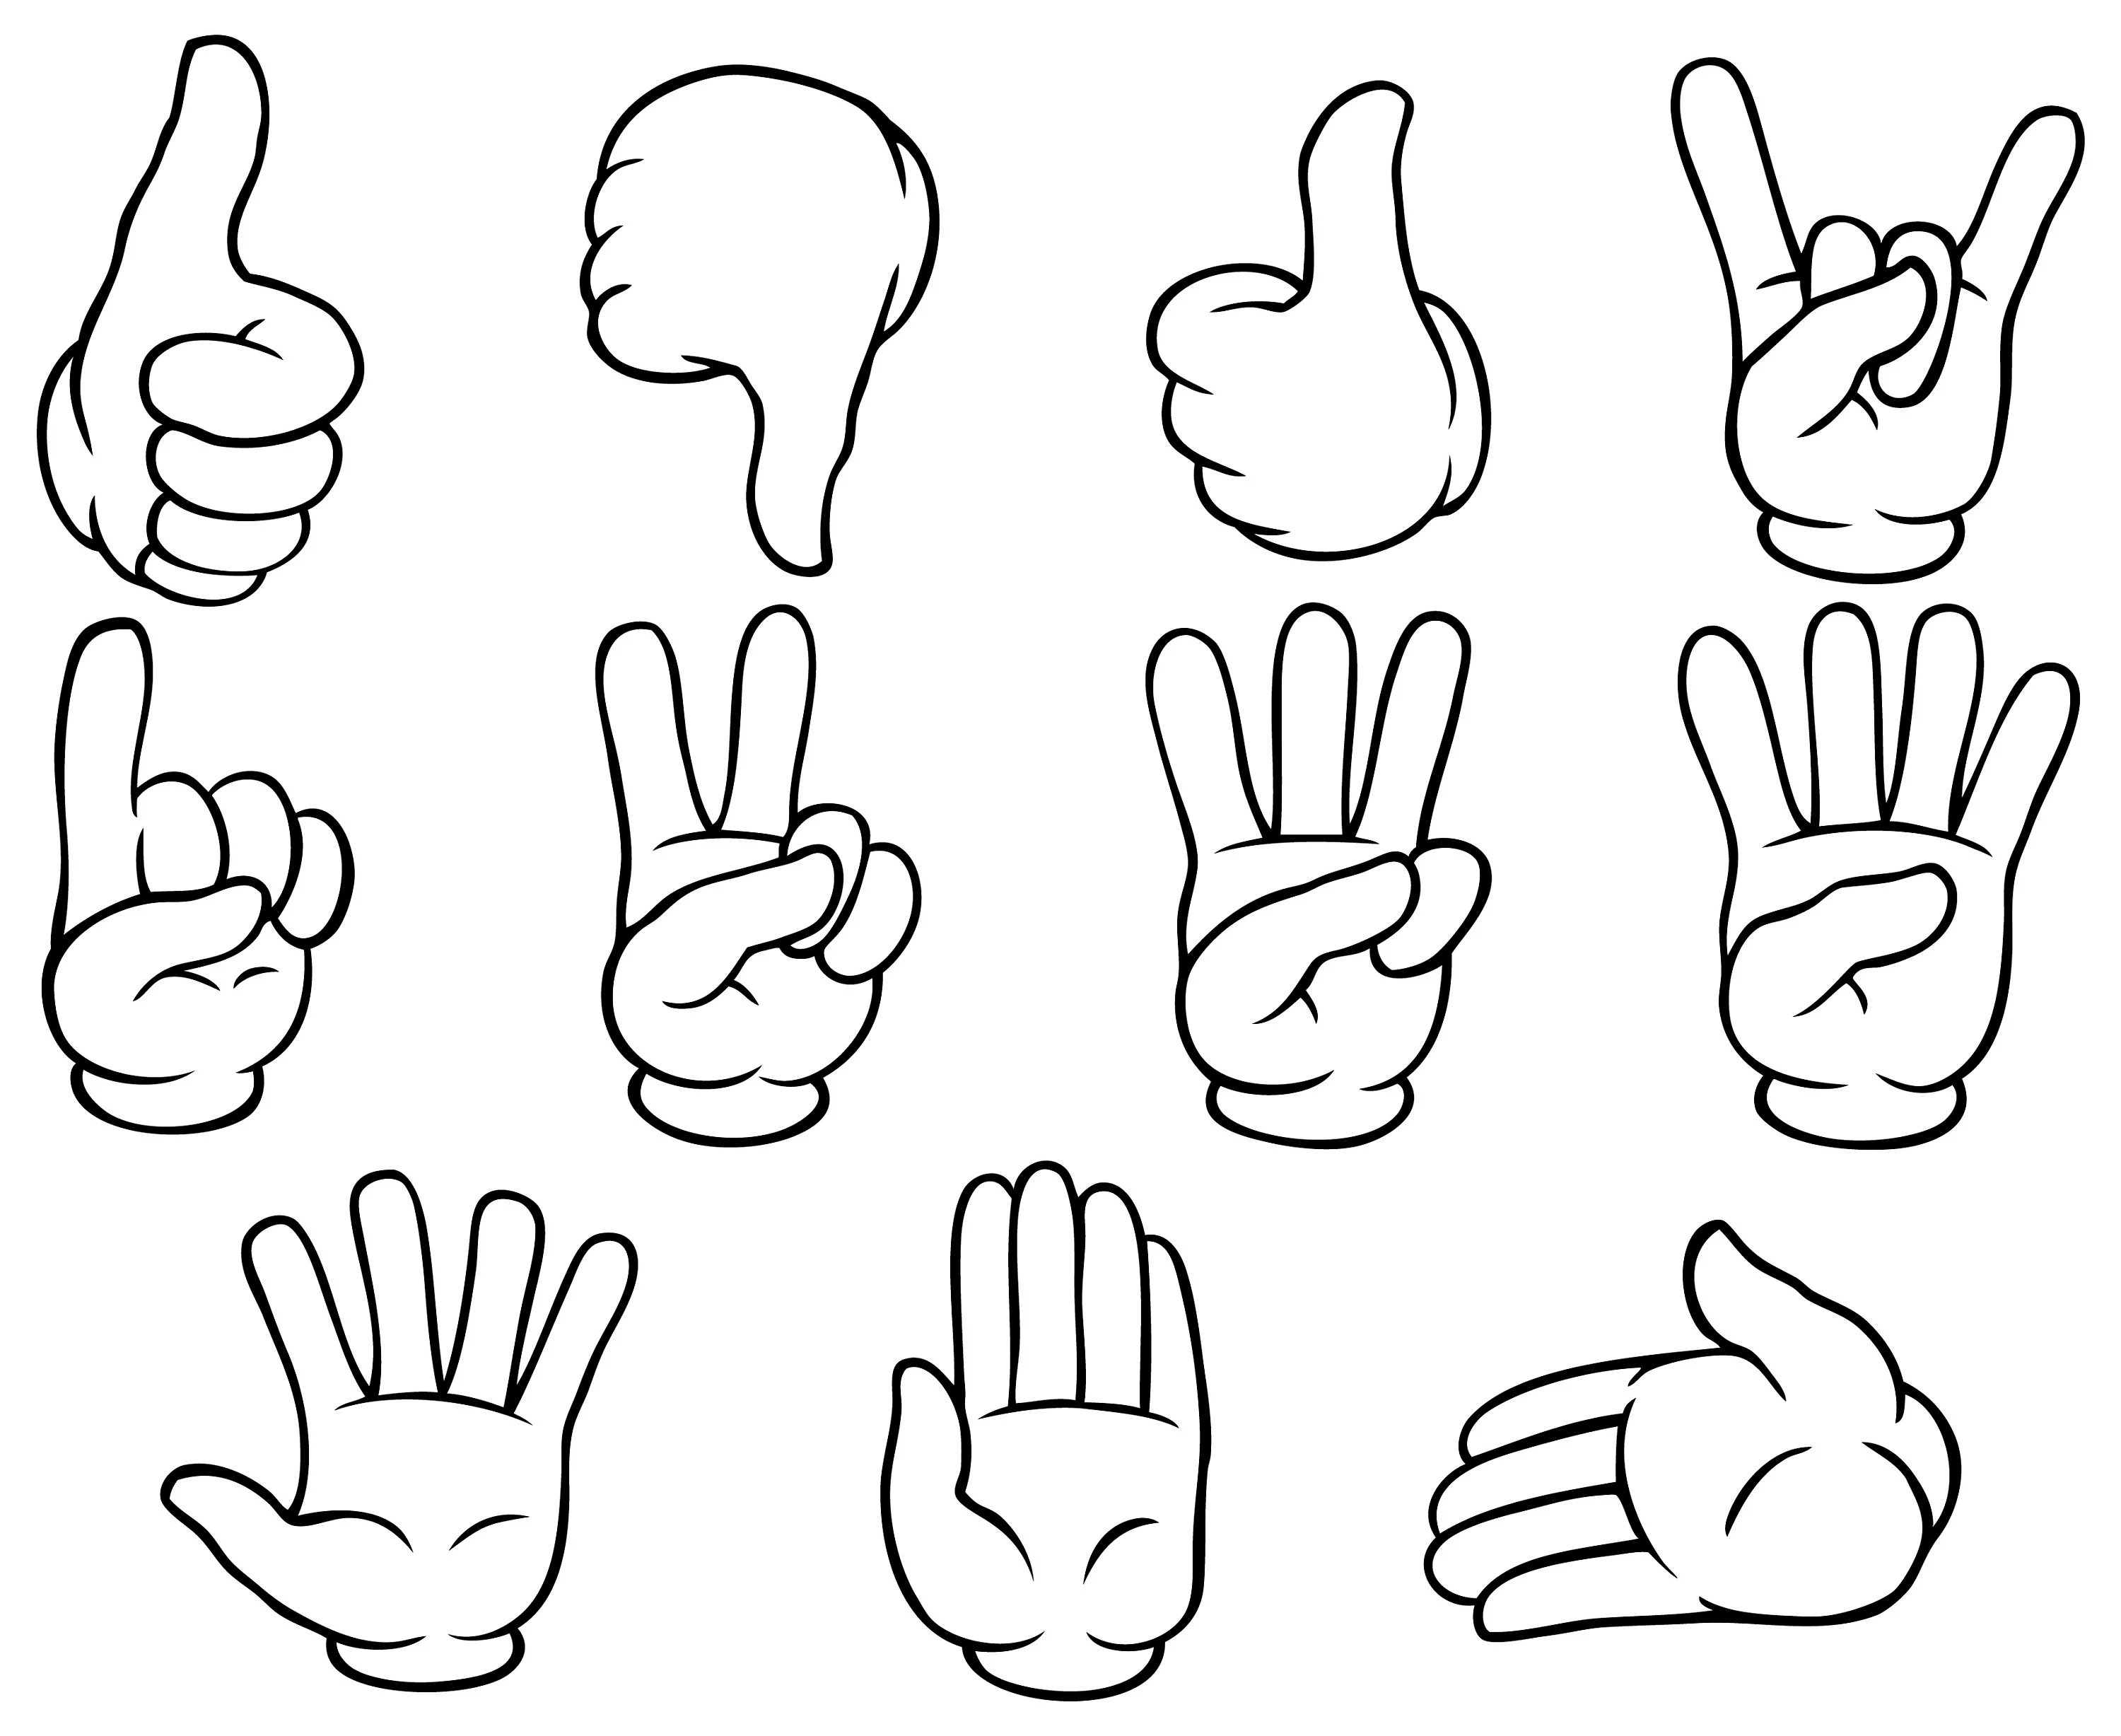 Hand Gestures Sign Finger Counting Thumbs Up Stop